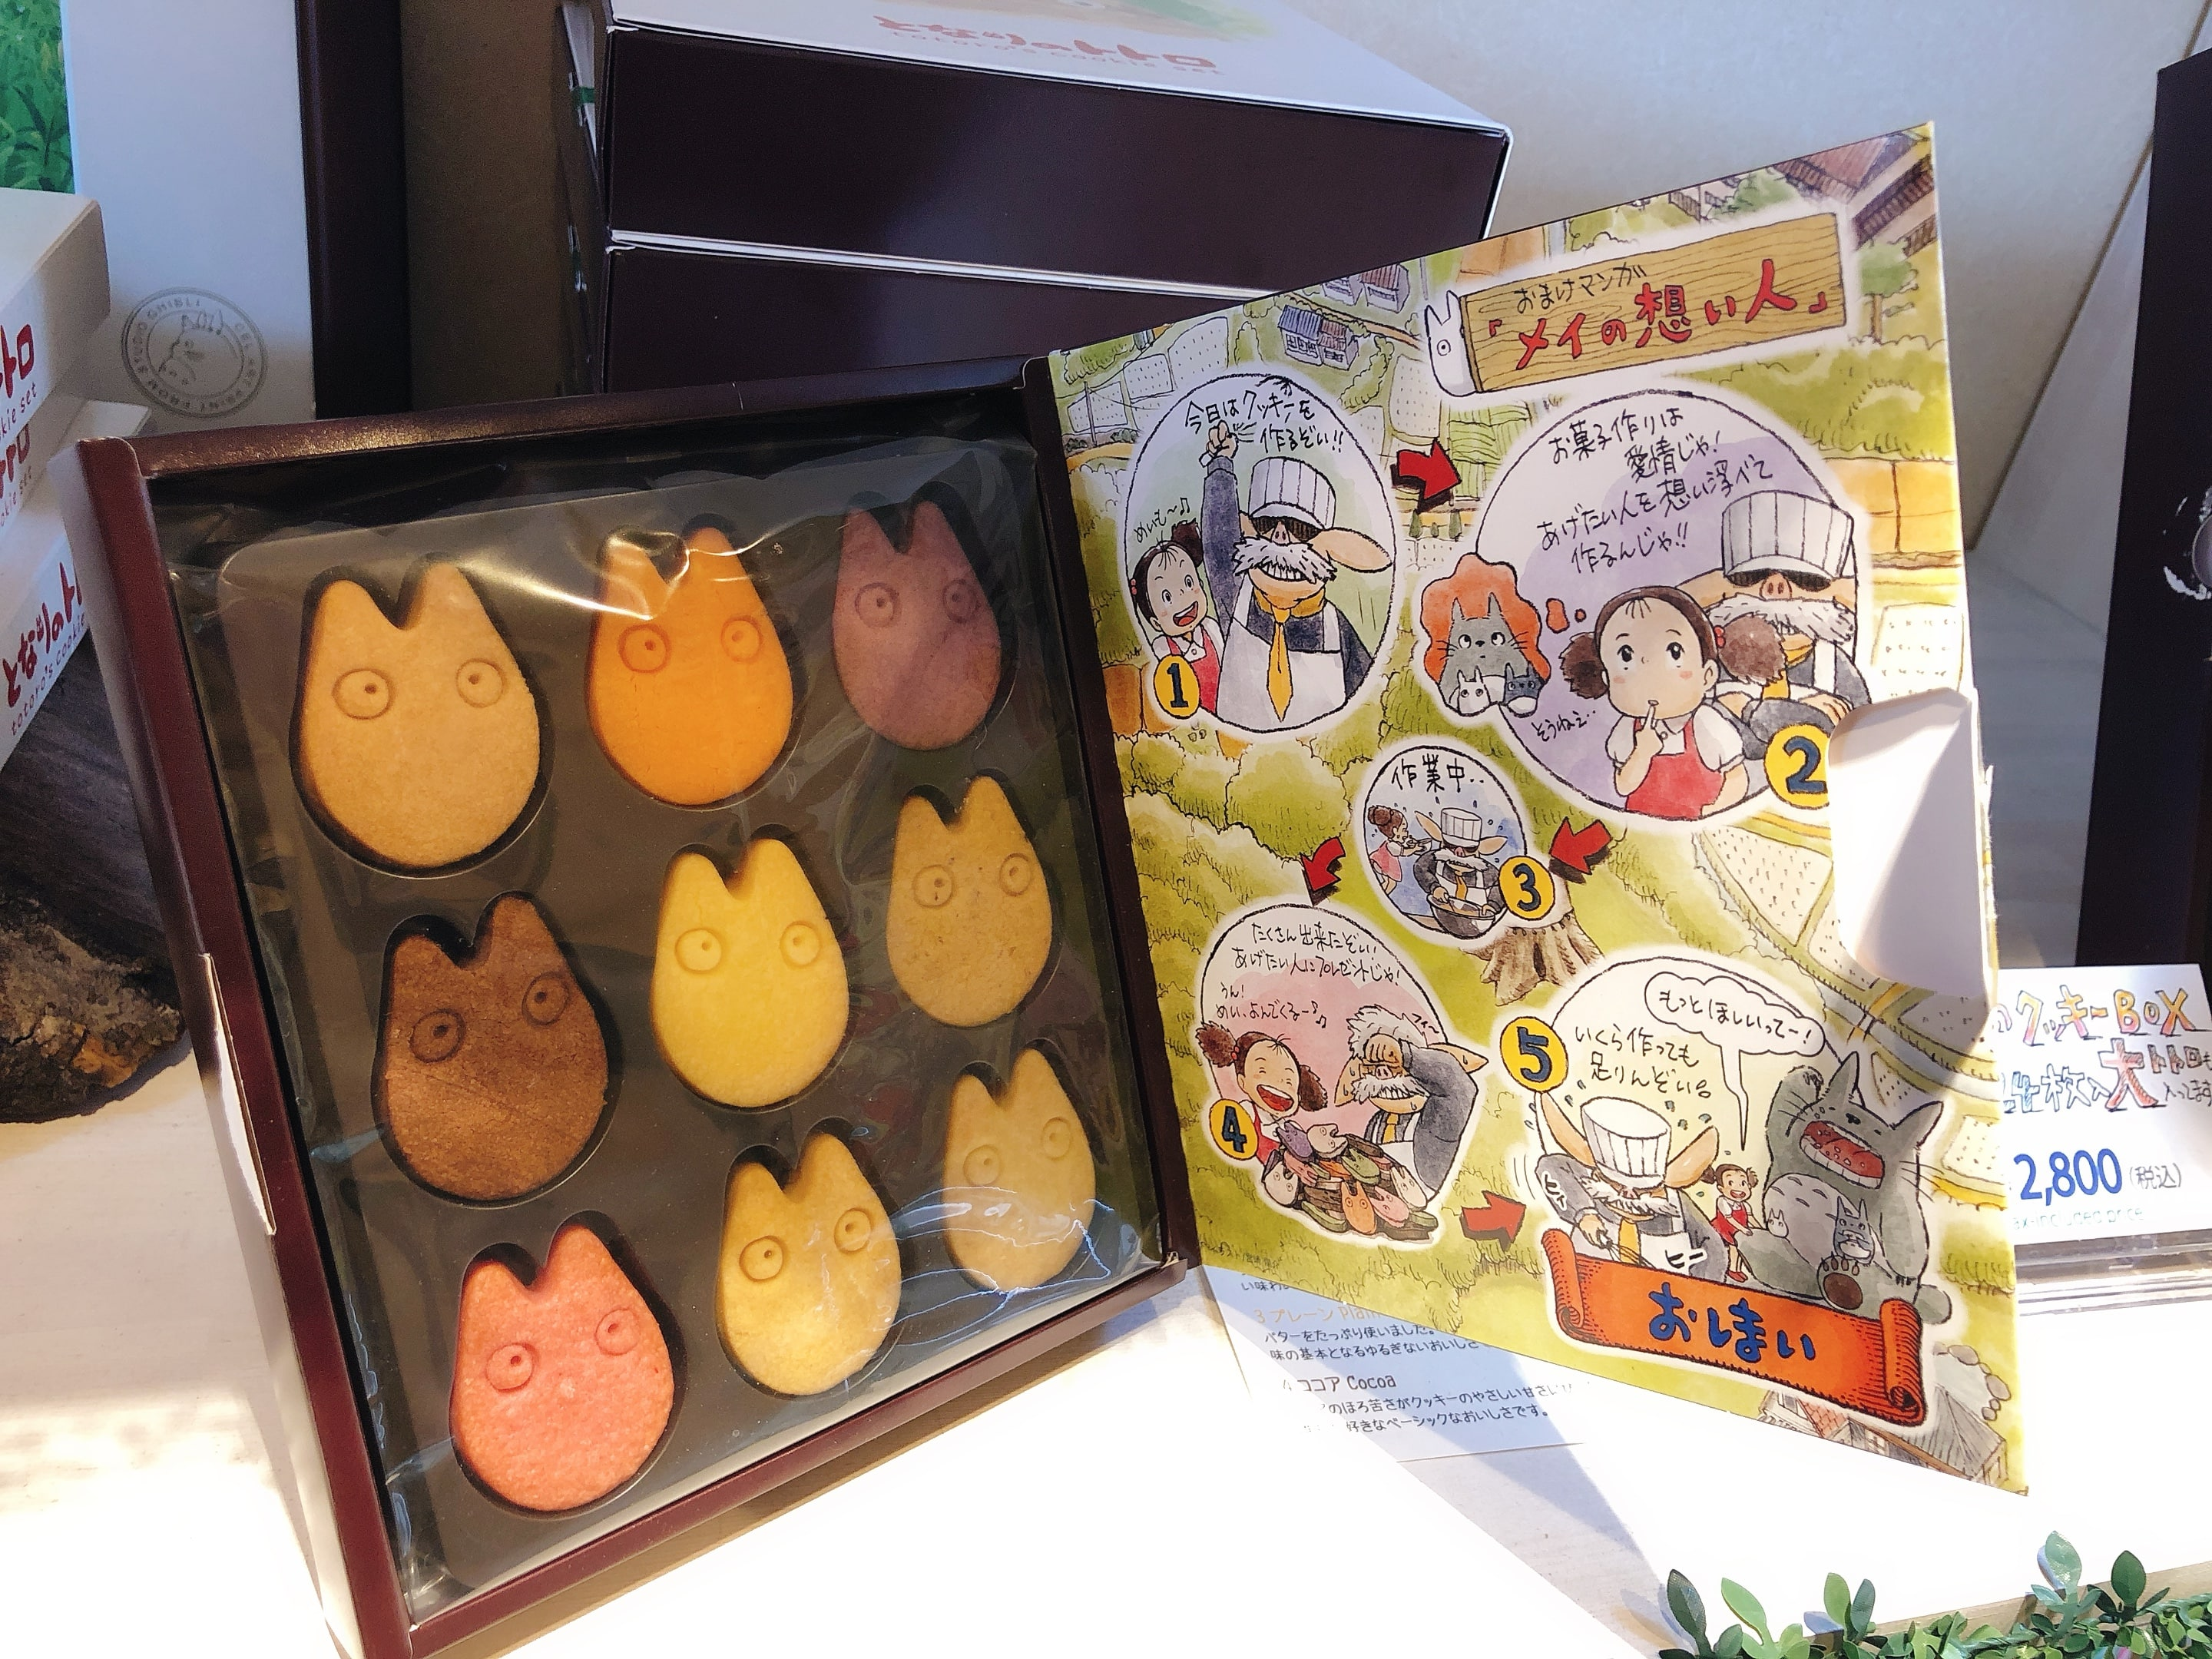 Totoro-shaped cookies sold at Shirohige Cream Puff Factory in Kishijoji